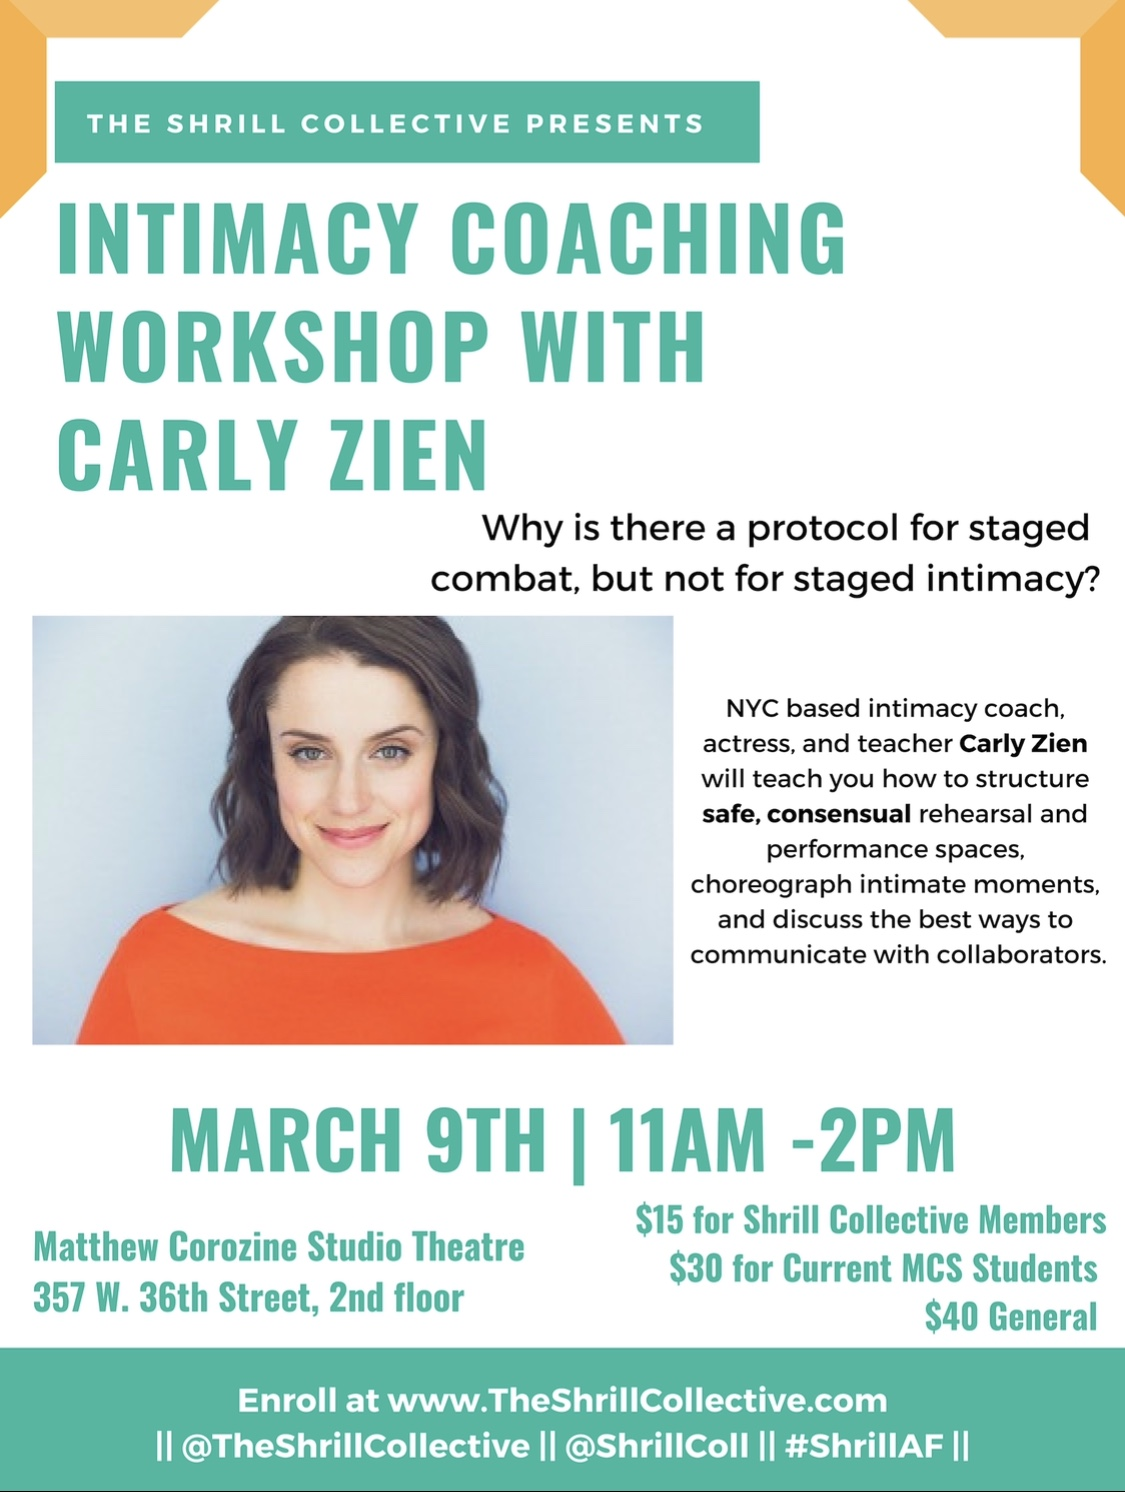 March 2019: Intimacy Workshop with Carly Zien - Why is there a protocol for staged combat, but not for staged intimacy?In this workshop, Carly will teach you how to structure safe, consensual rehearsal and performance spaces. We will discuss the meaning of consent, the best ways to communicate with collaborators, and how to choreograph intimate moments. Intimacy directing is quickly becoming the industry standard, so come learn how to be an artistic advocate of this growing movement.